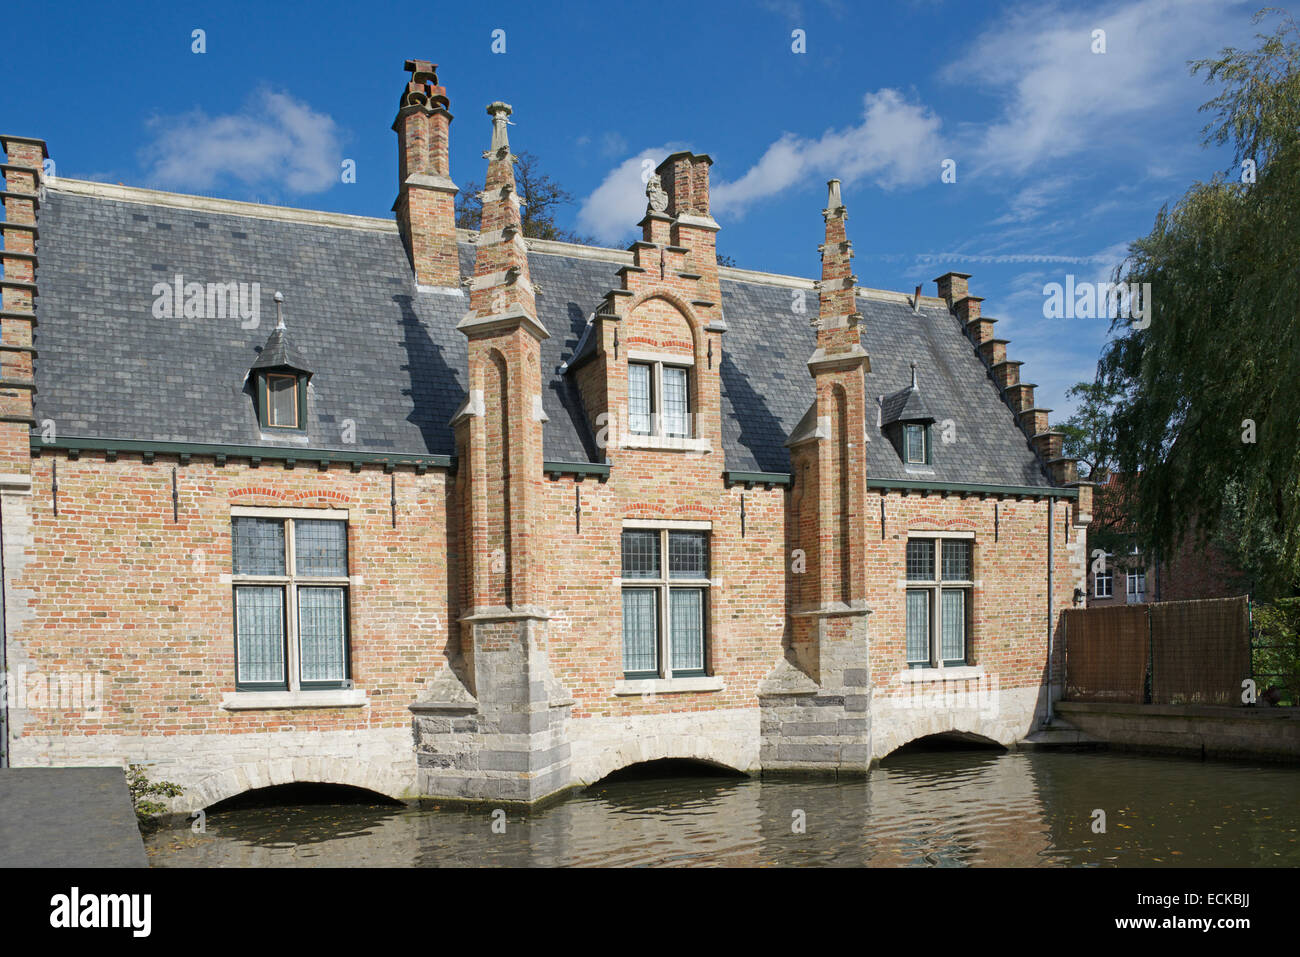 Gabled lock keeper house or sluice house Minnewater Bruges Belgium - Stock Image